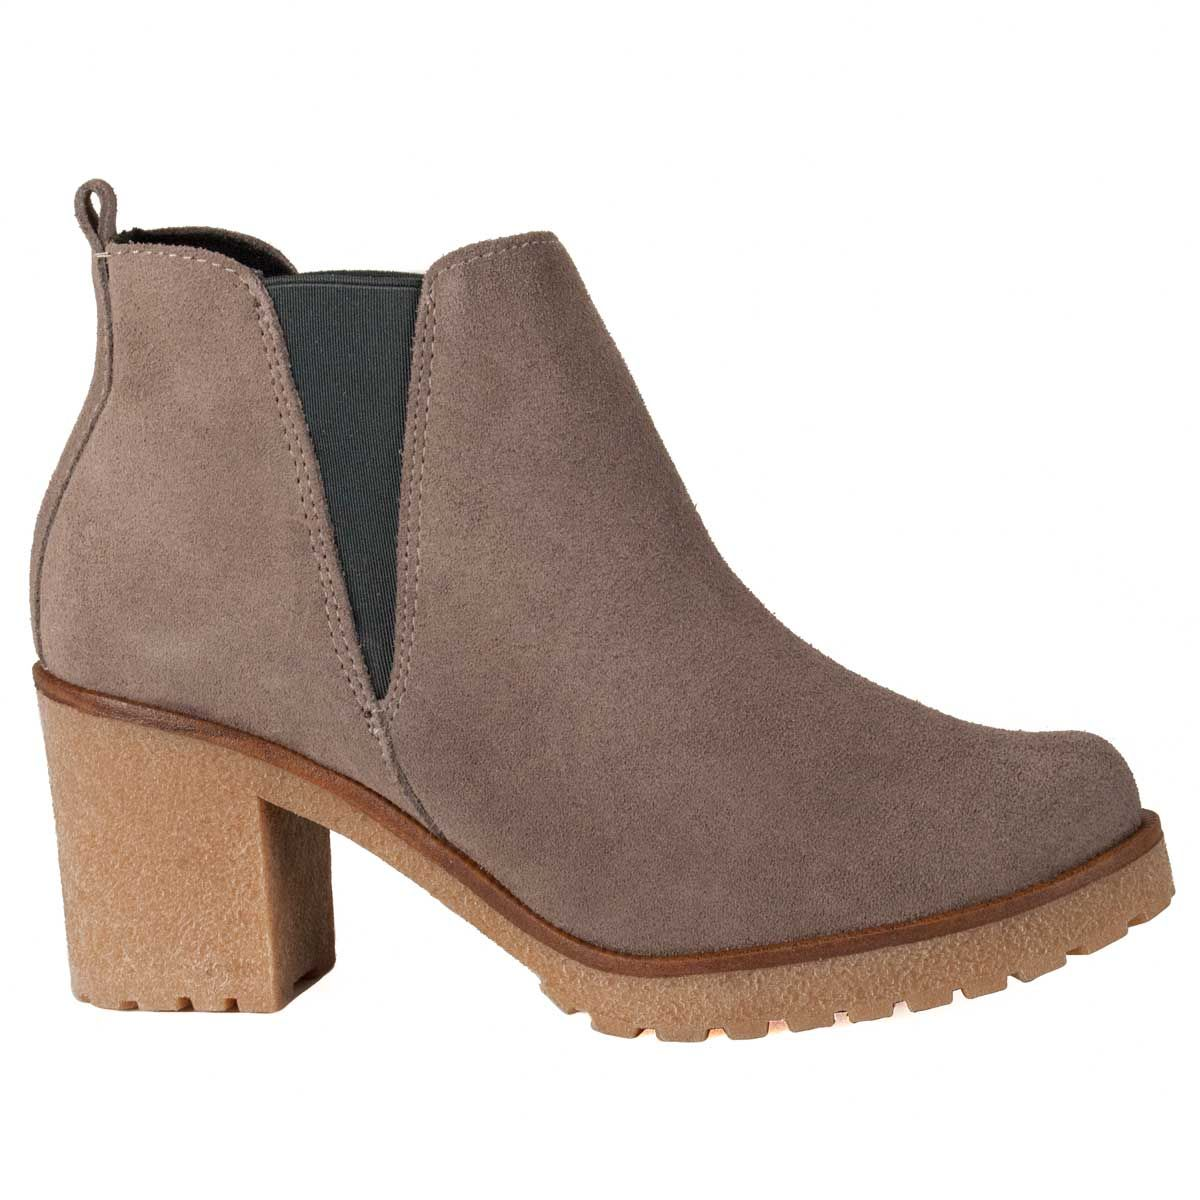 Montevita Heeled Ankle Boot in Grey